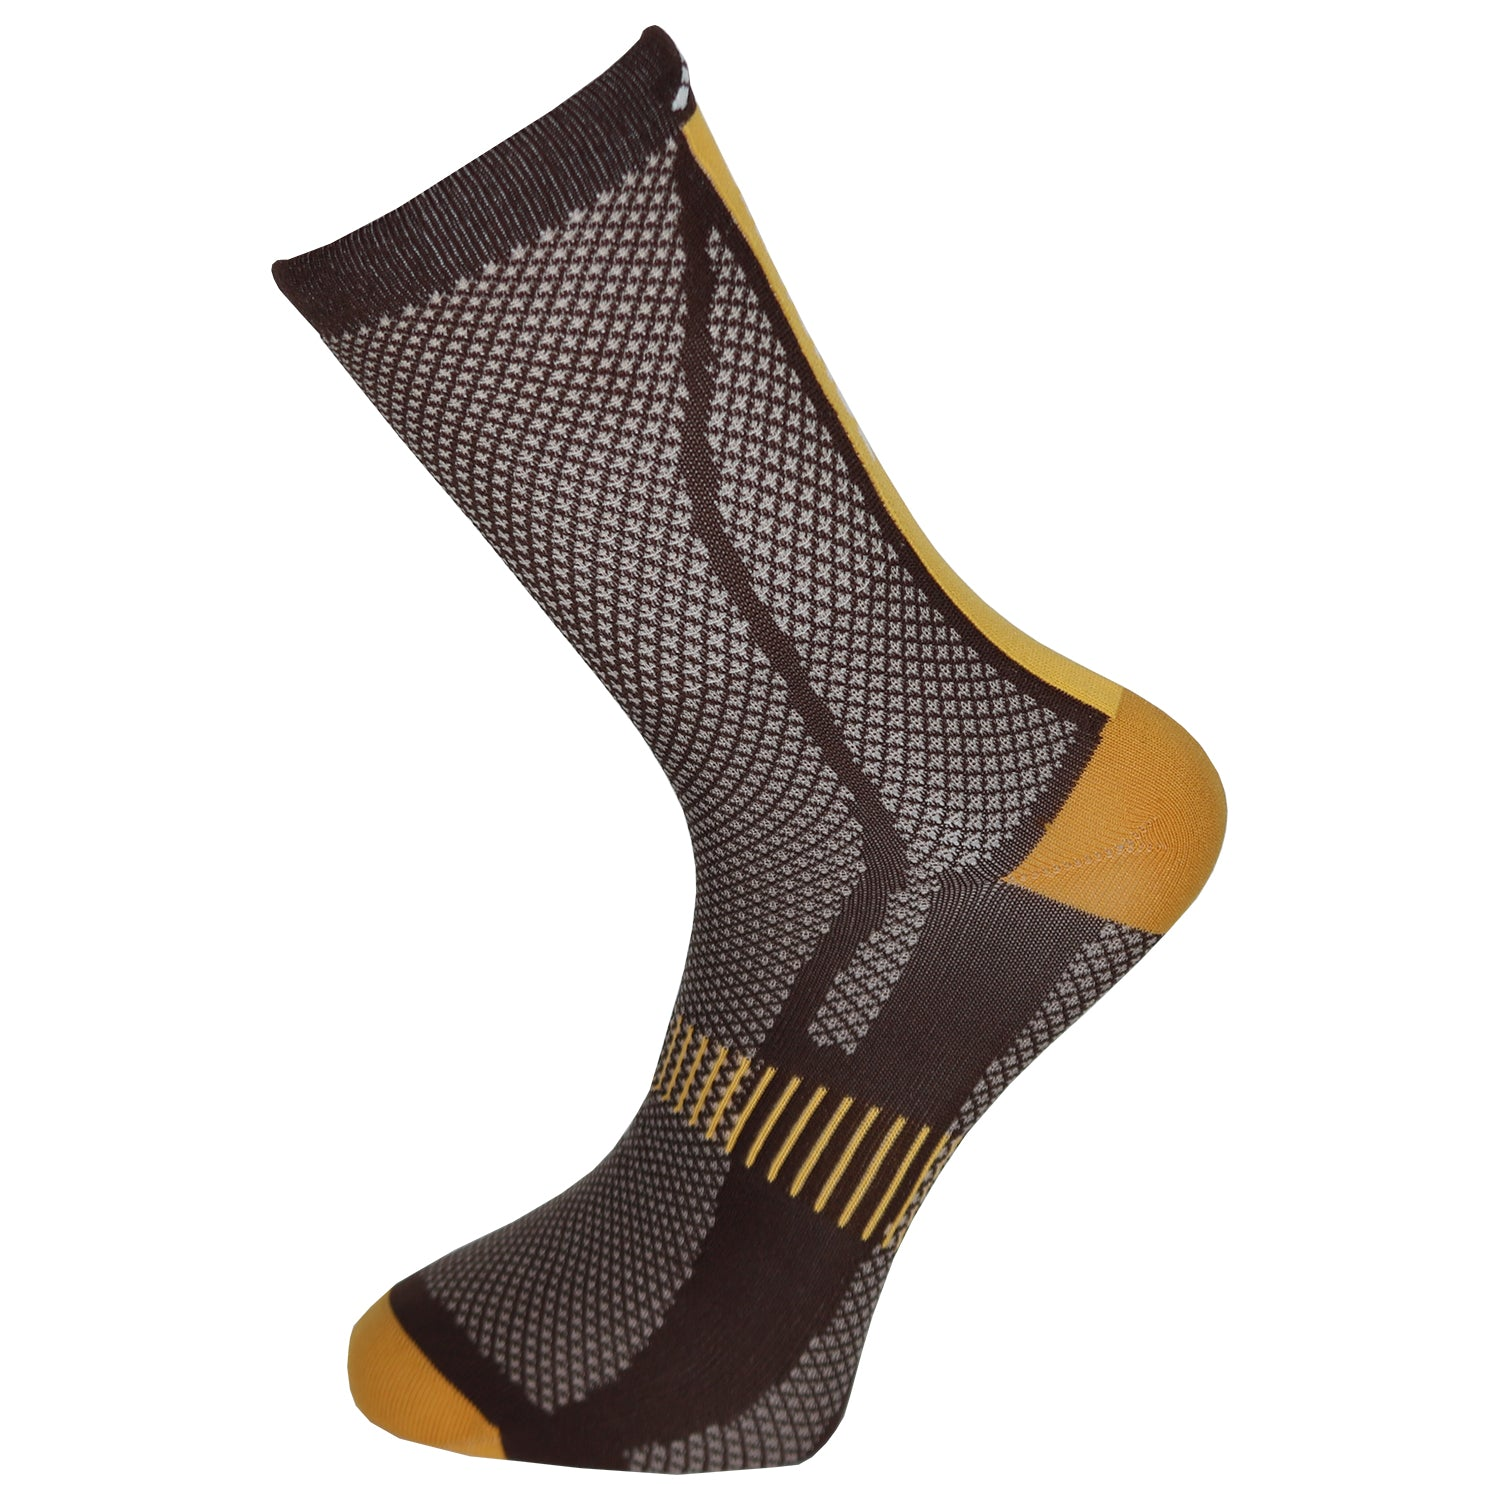 Tour of Flanders Monument Cycling Socks